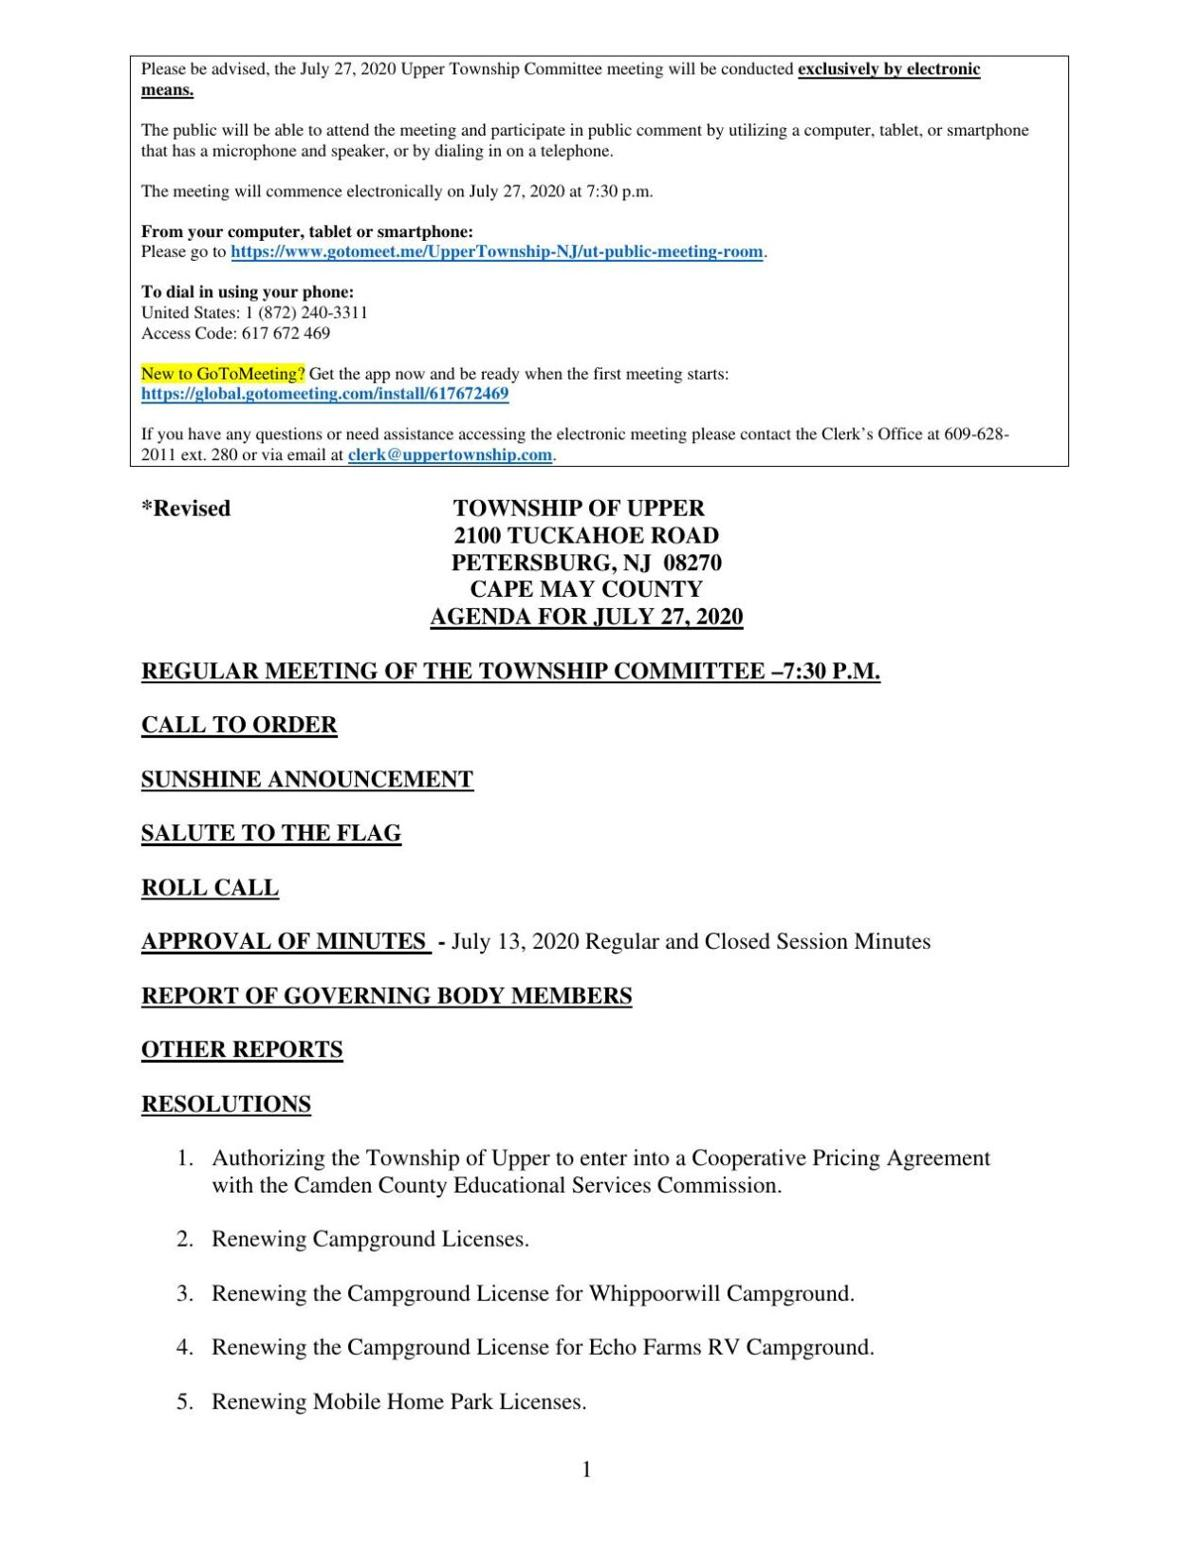 Upper Township Committee Meeting Agenda July 27, 2020